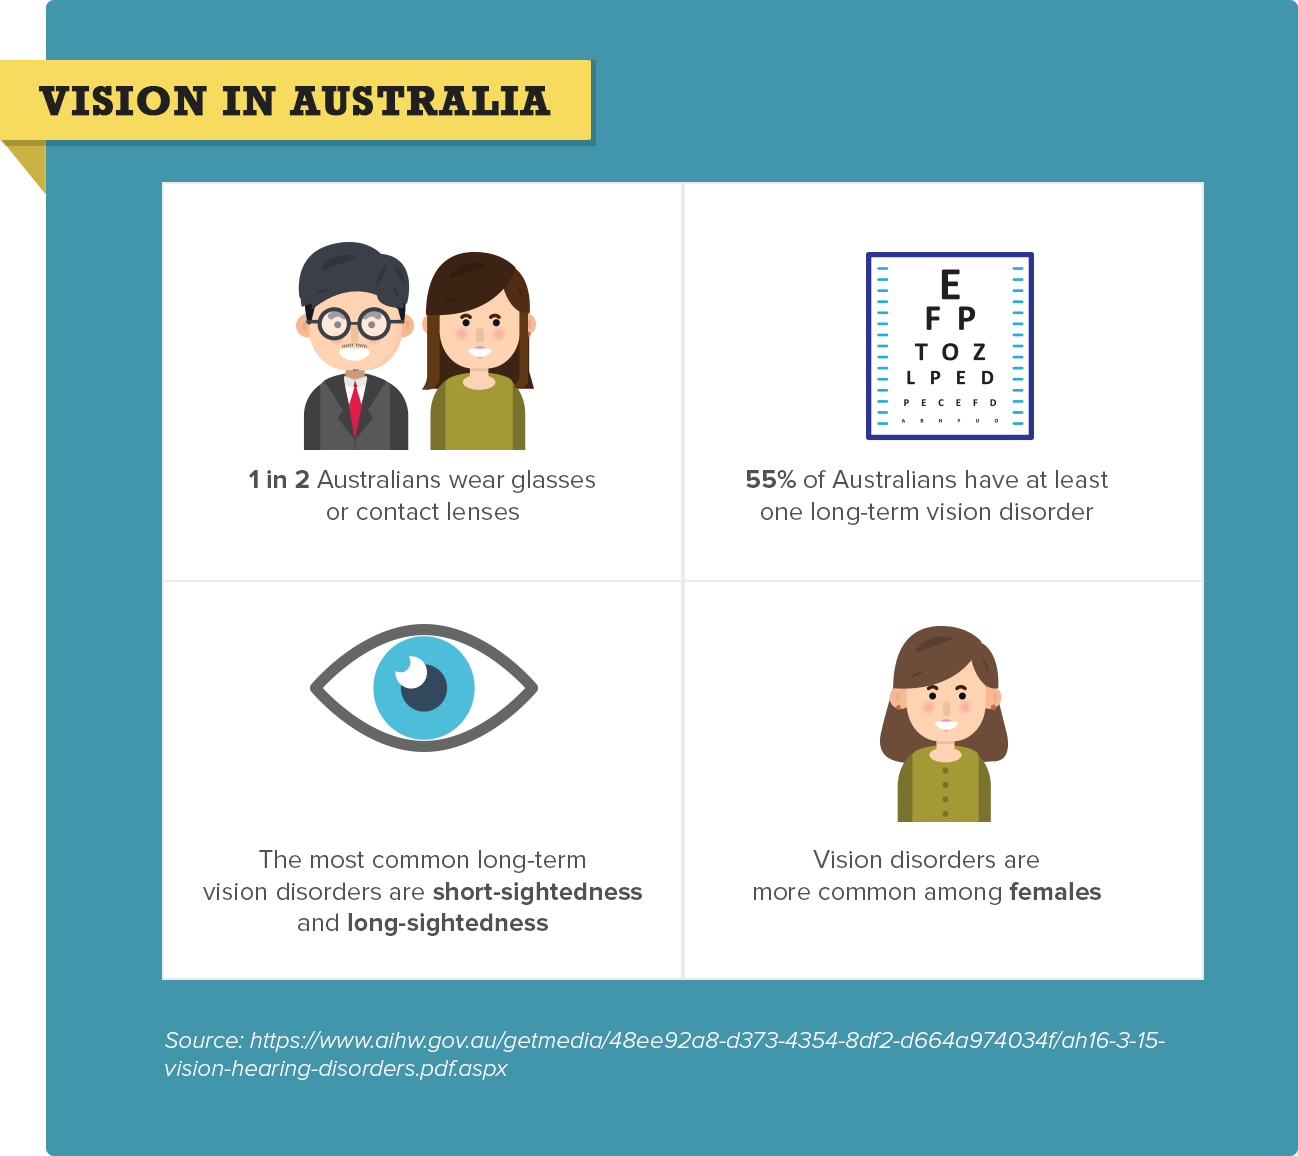 Facts About Vision in Australia